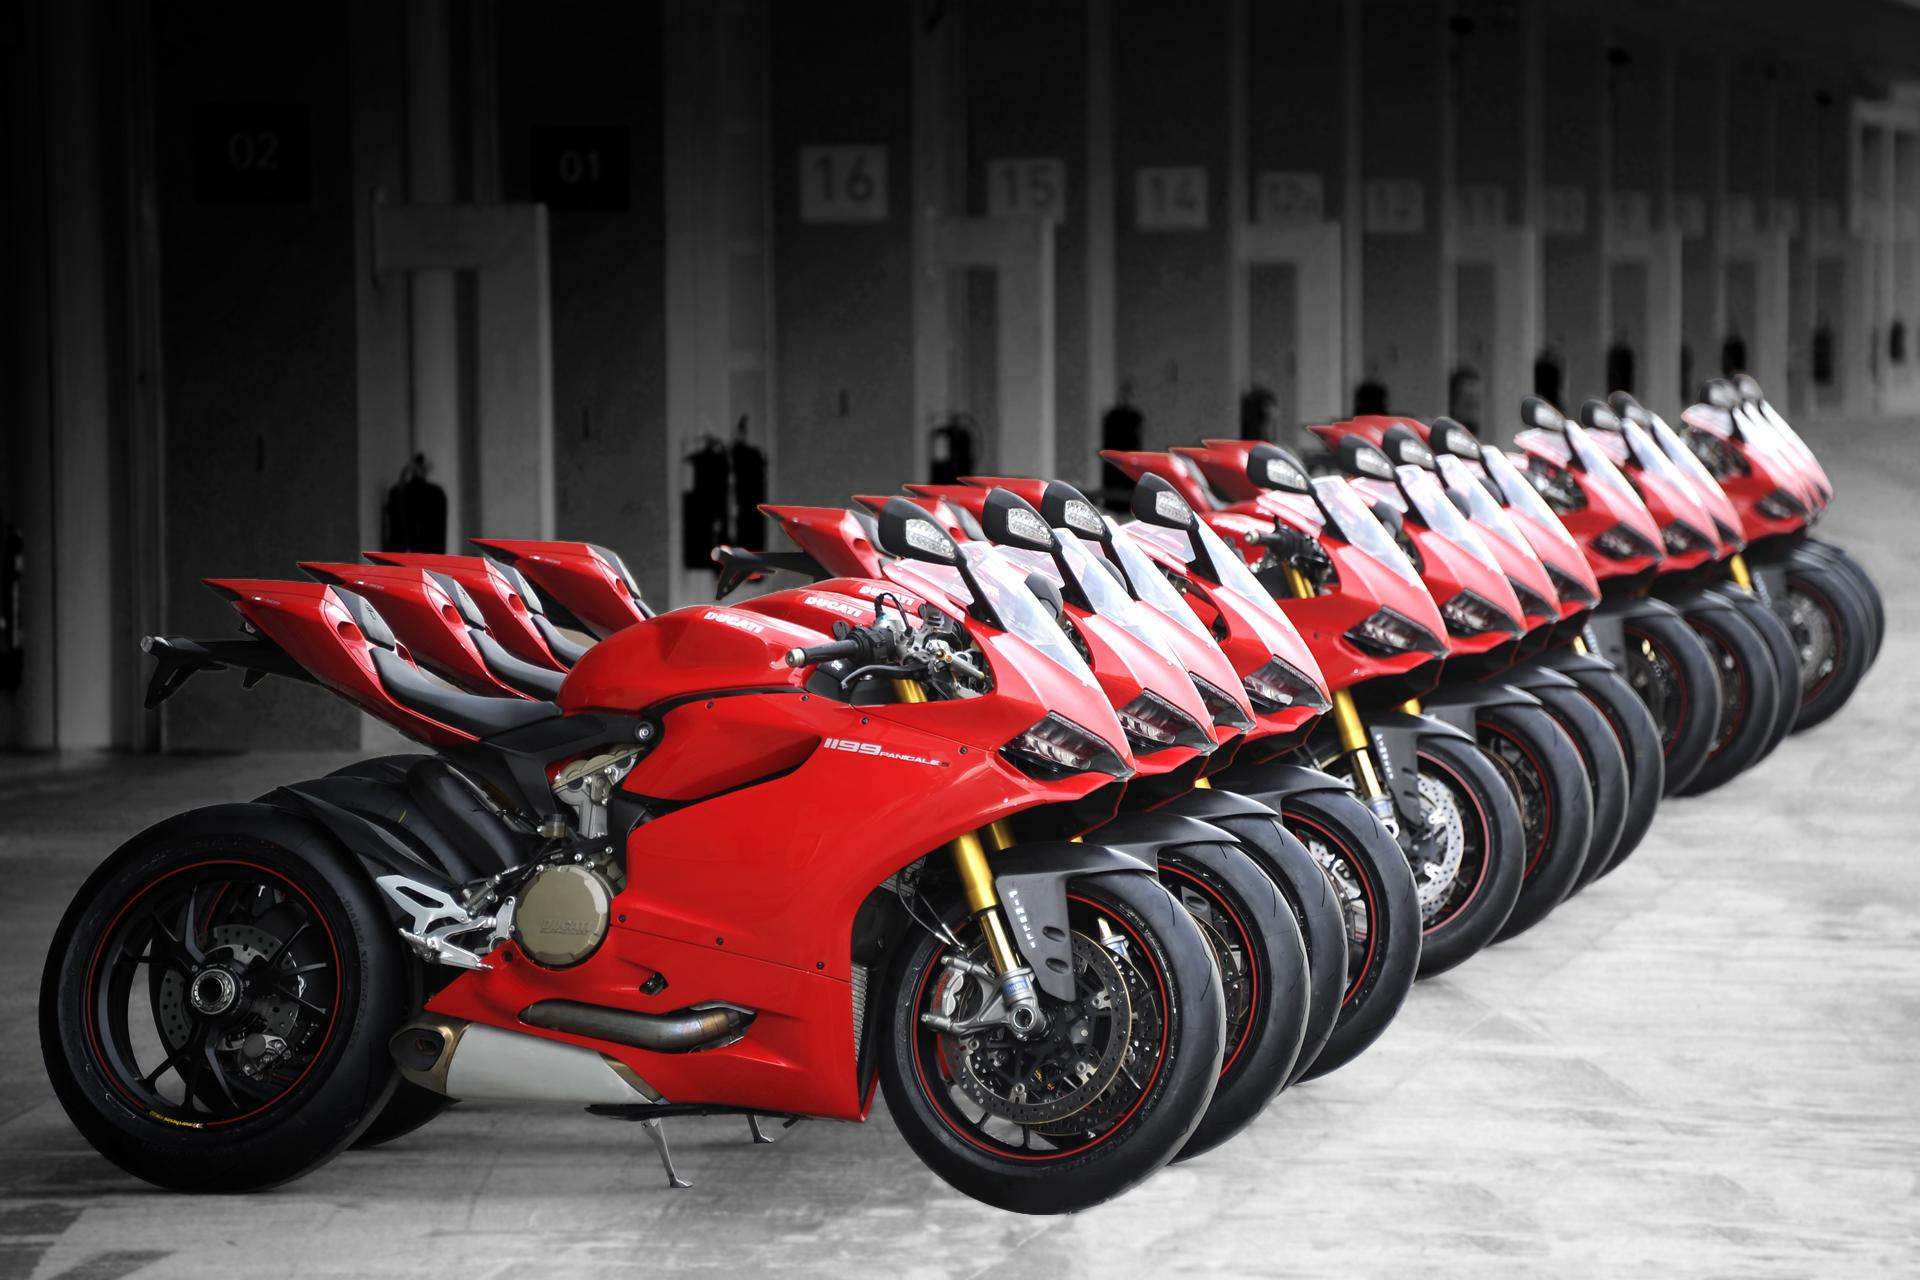 Ducati 1199 Panigale S Photoshoot Wallpapers HD 1920x1280